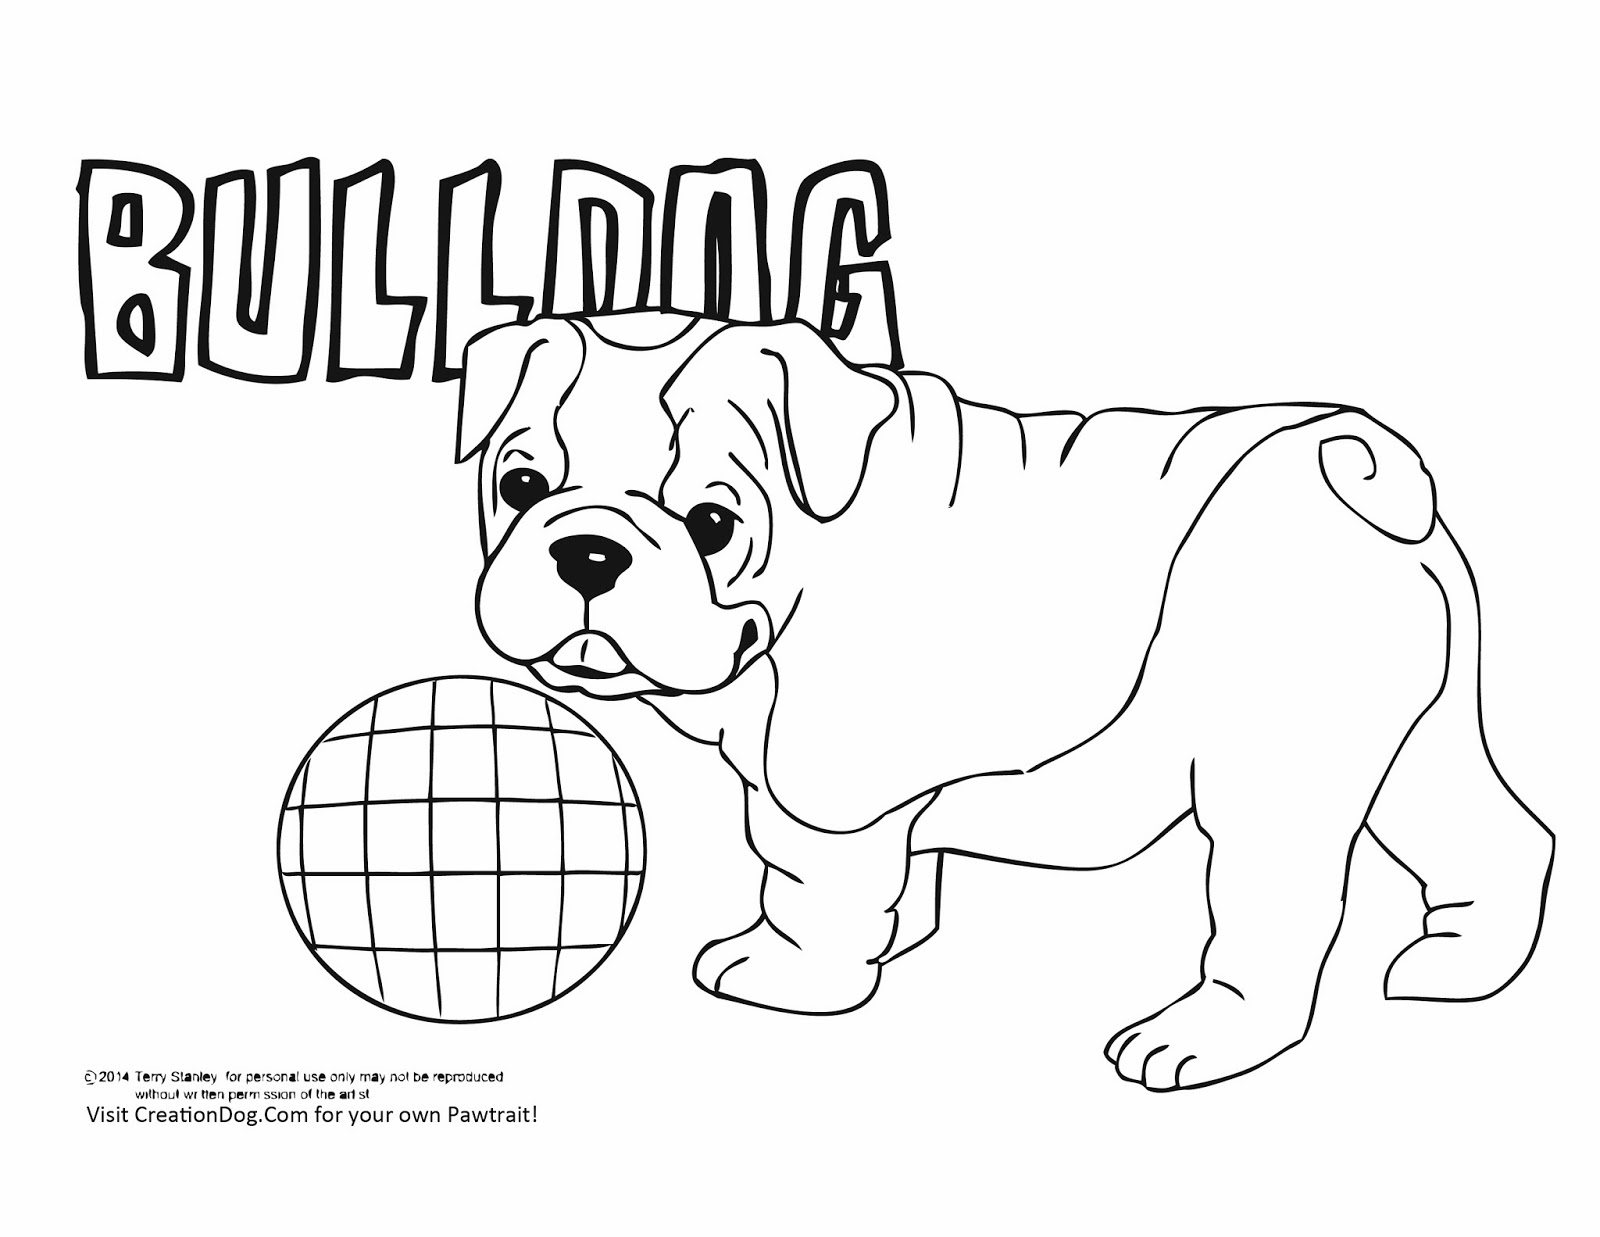 creation dog free coloring pages from creation dog